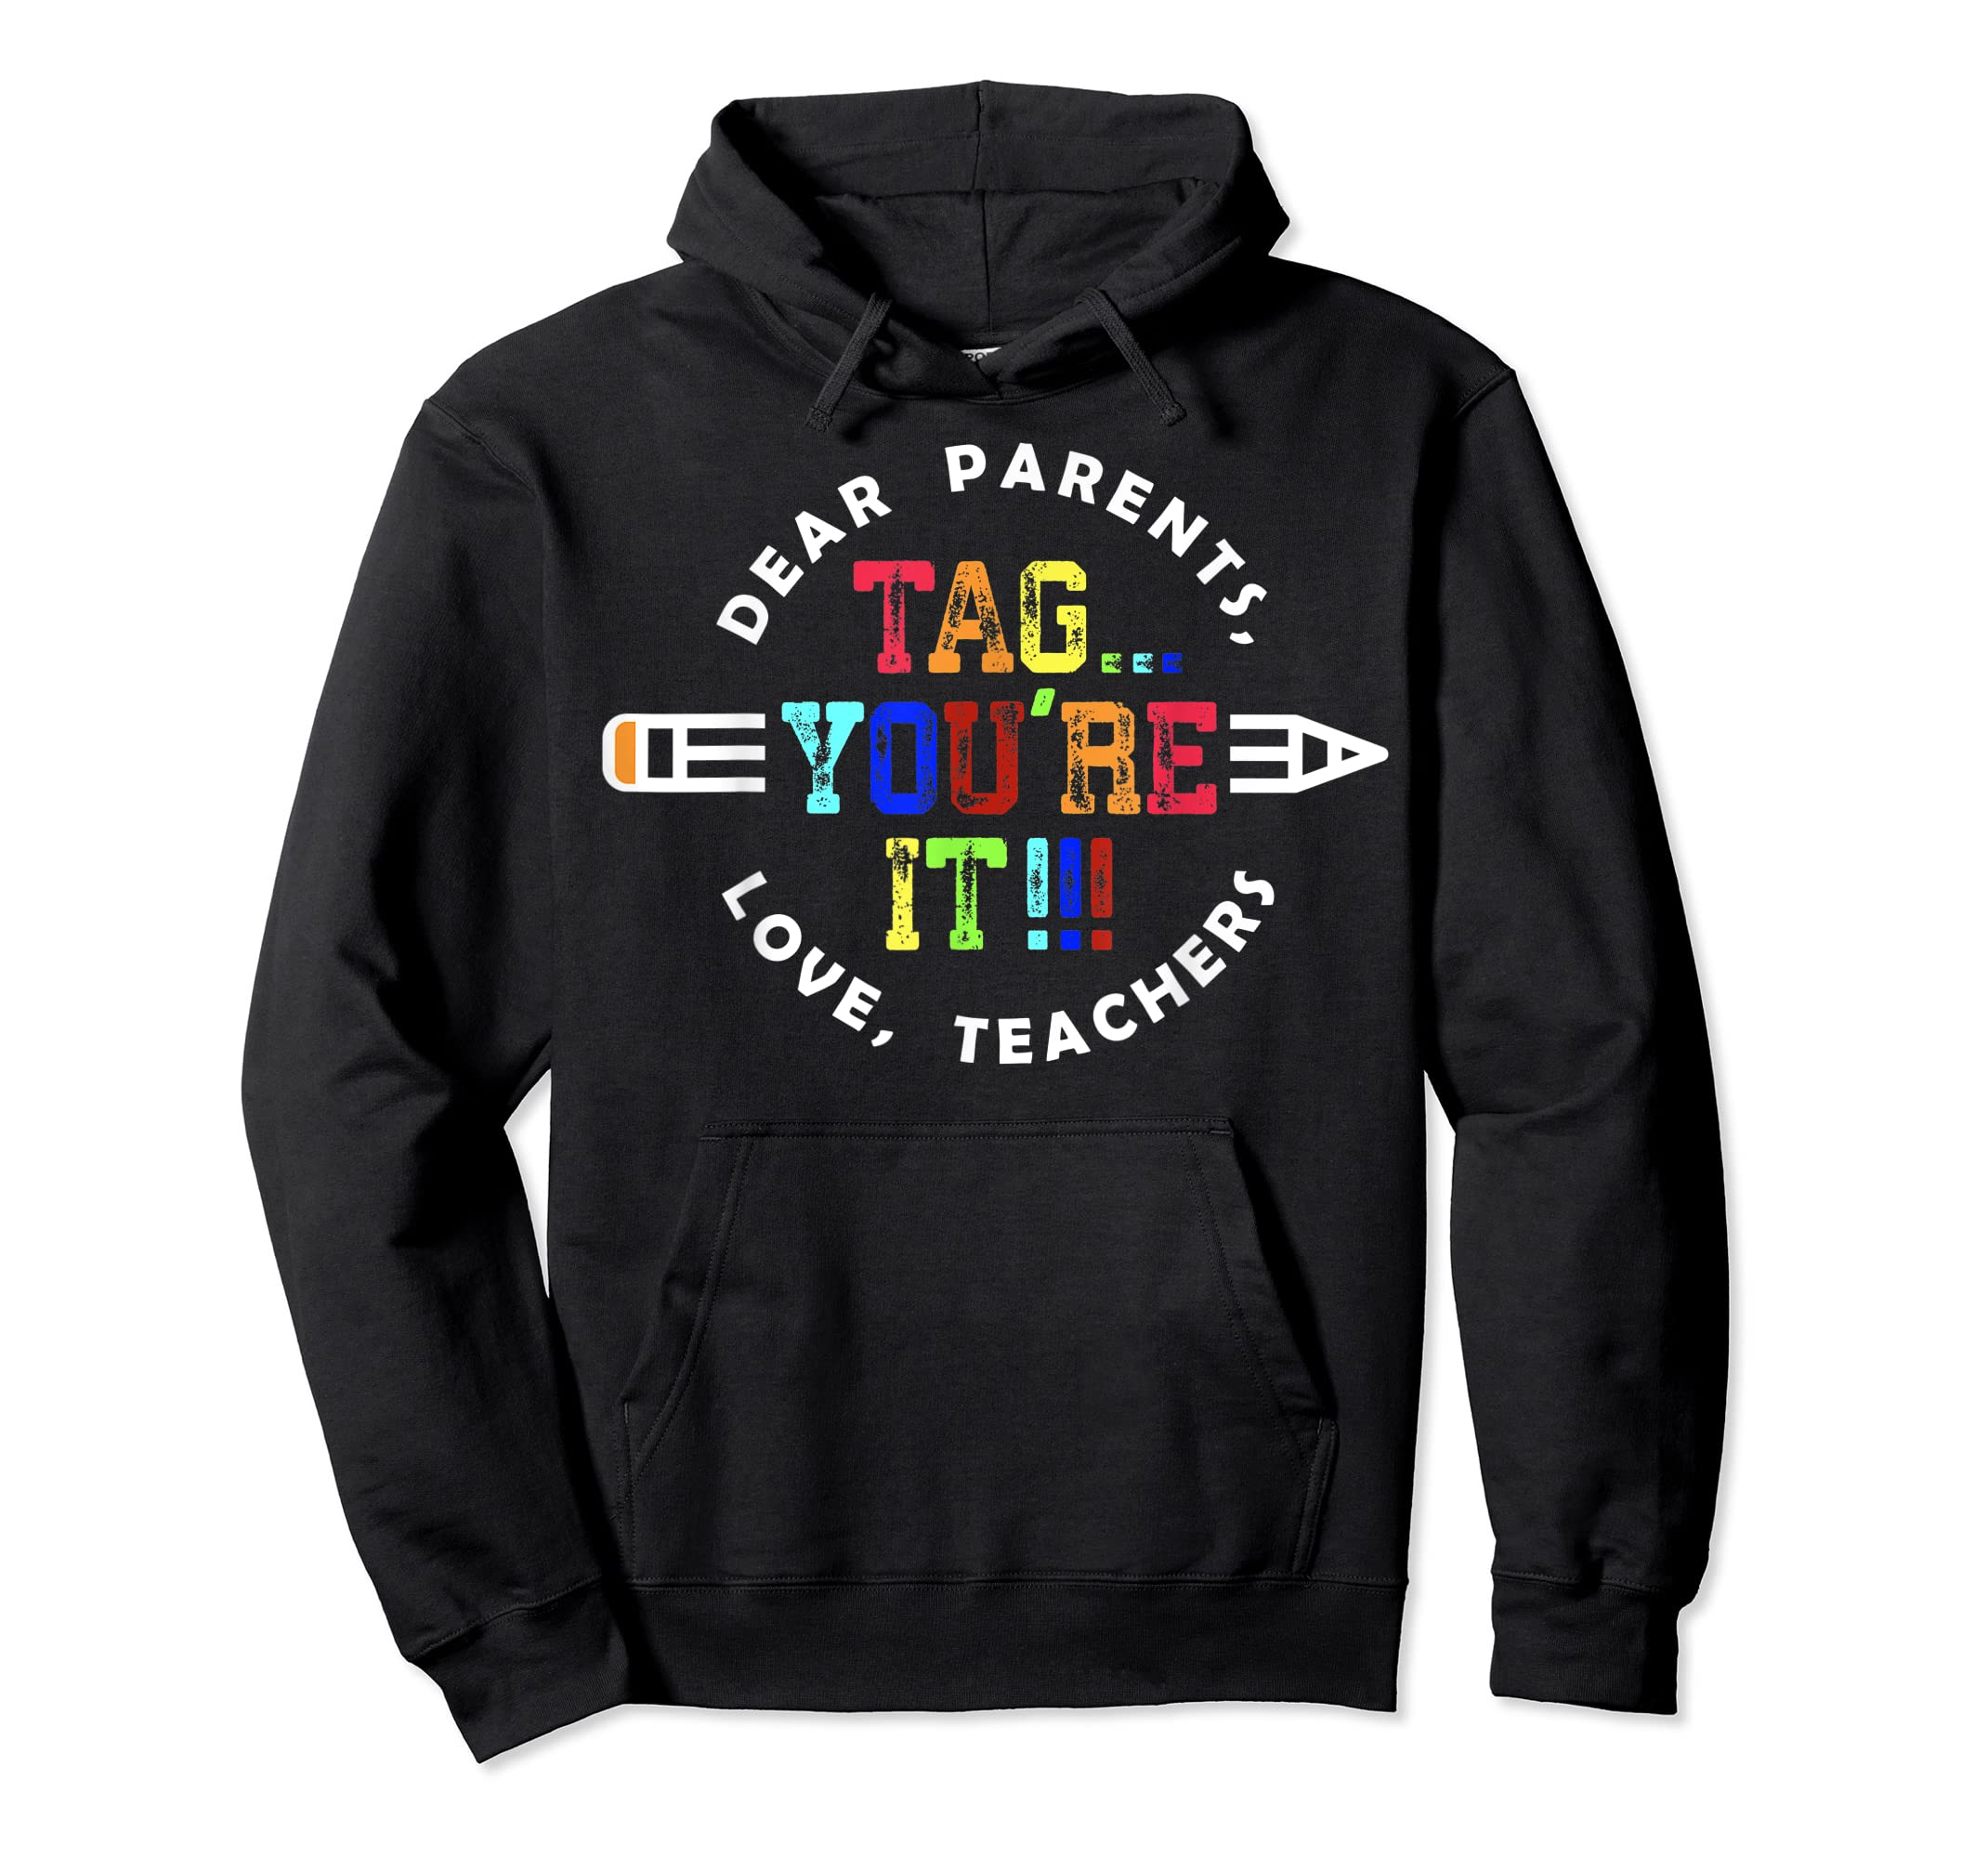 Teachers T-Shirts Dear Parents Tag You're It Love Great Gift-Hoodie-Black